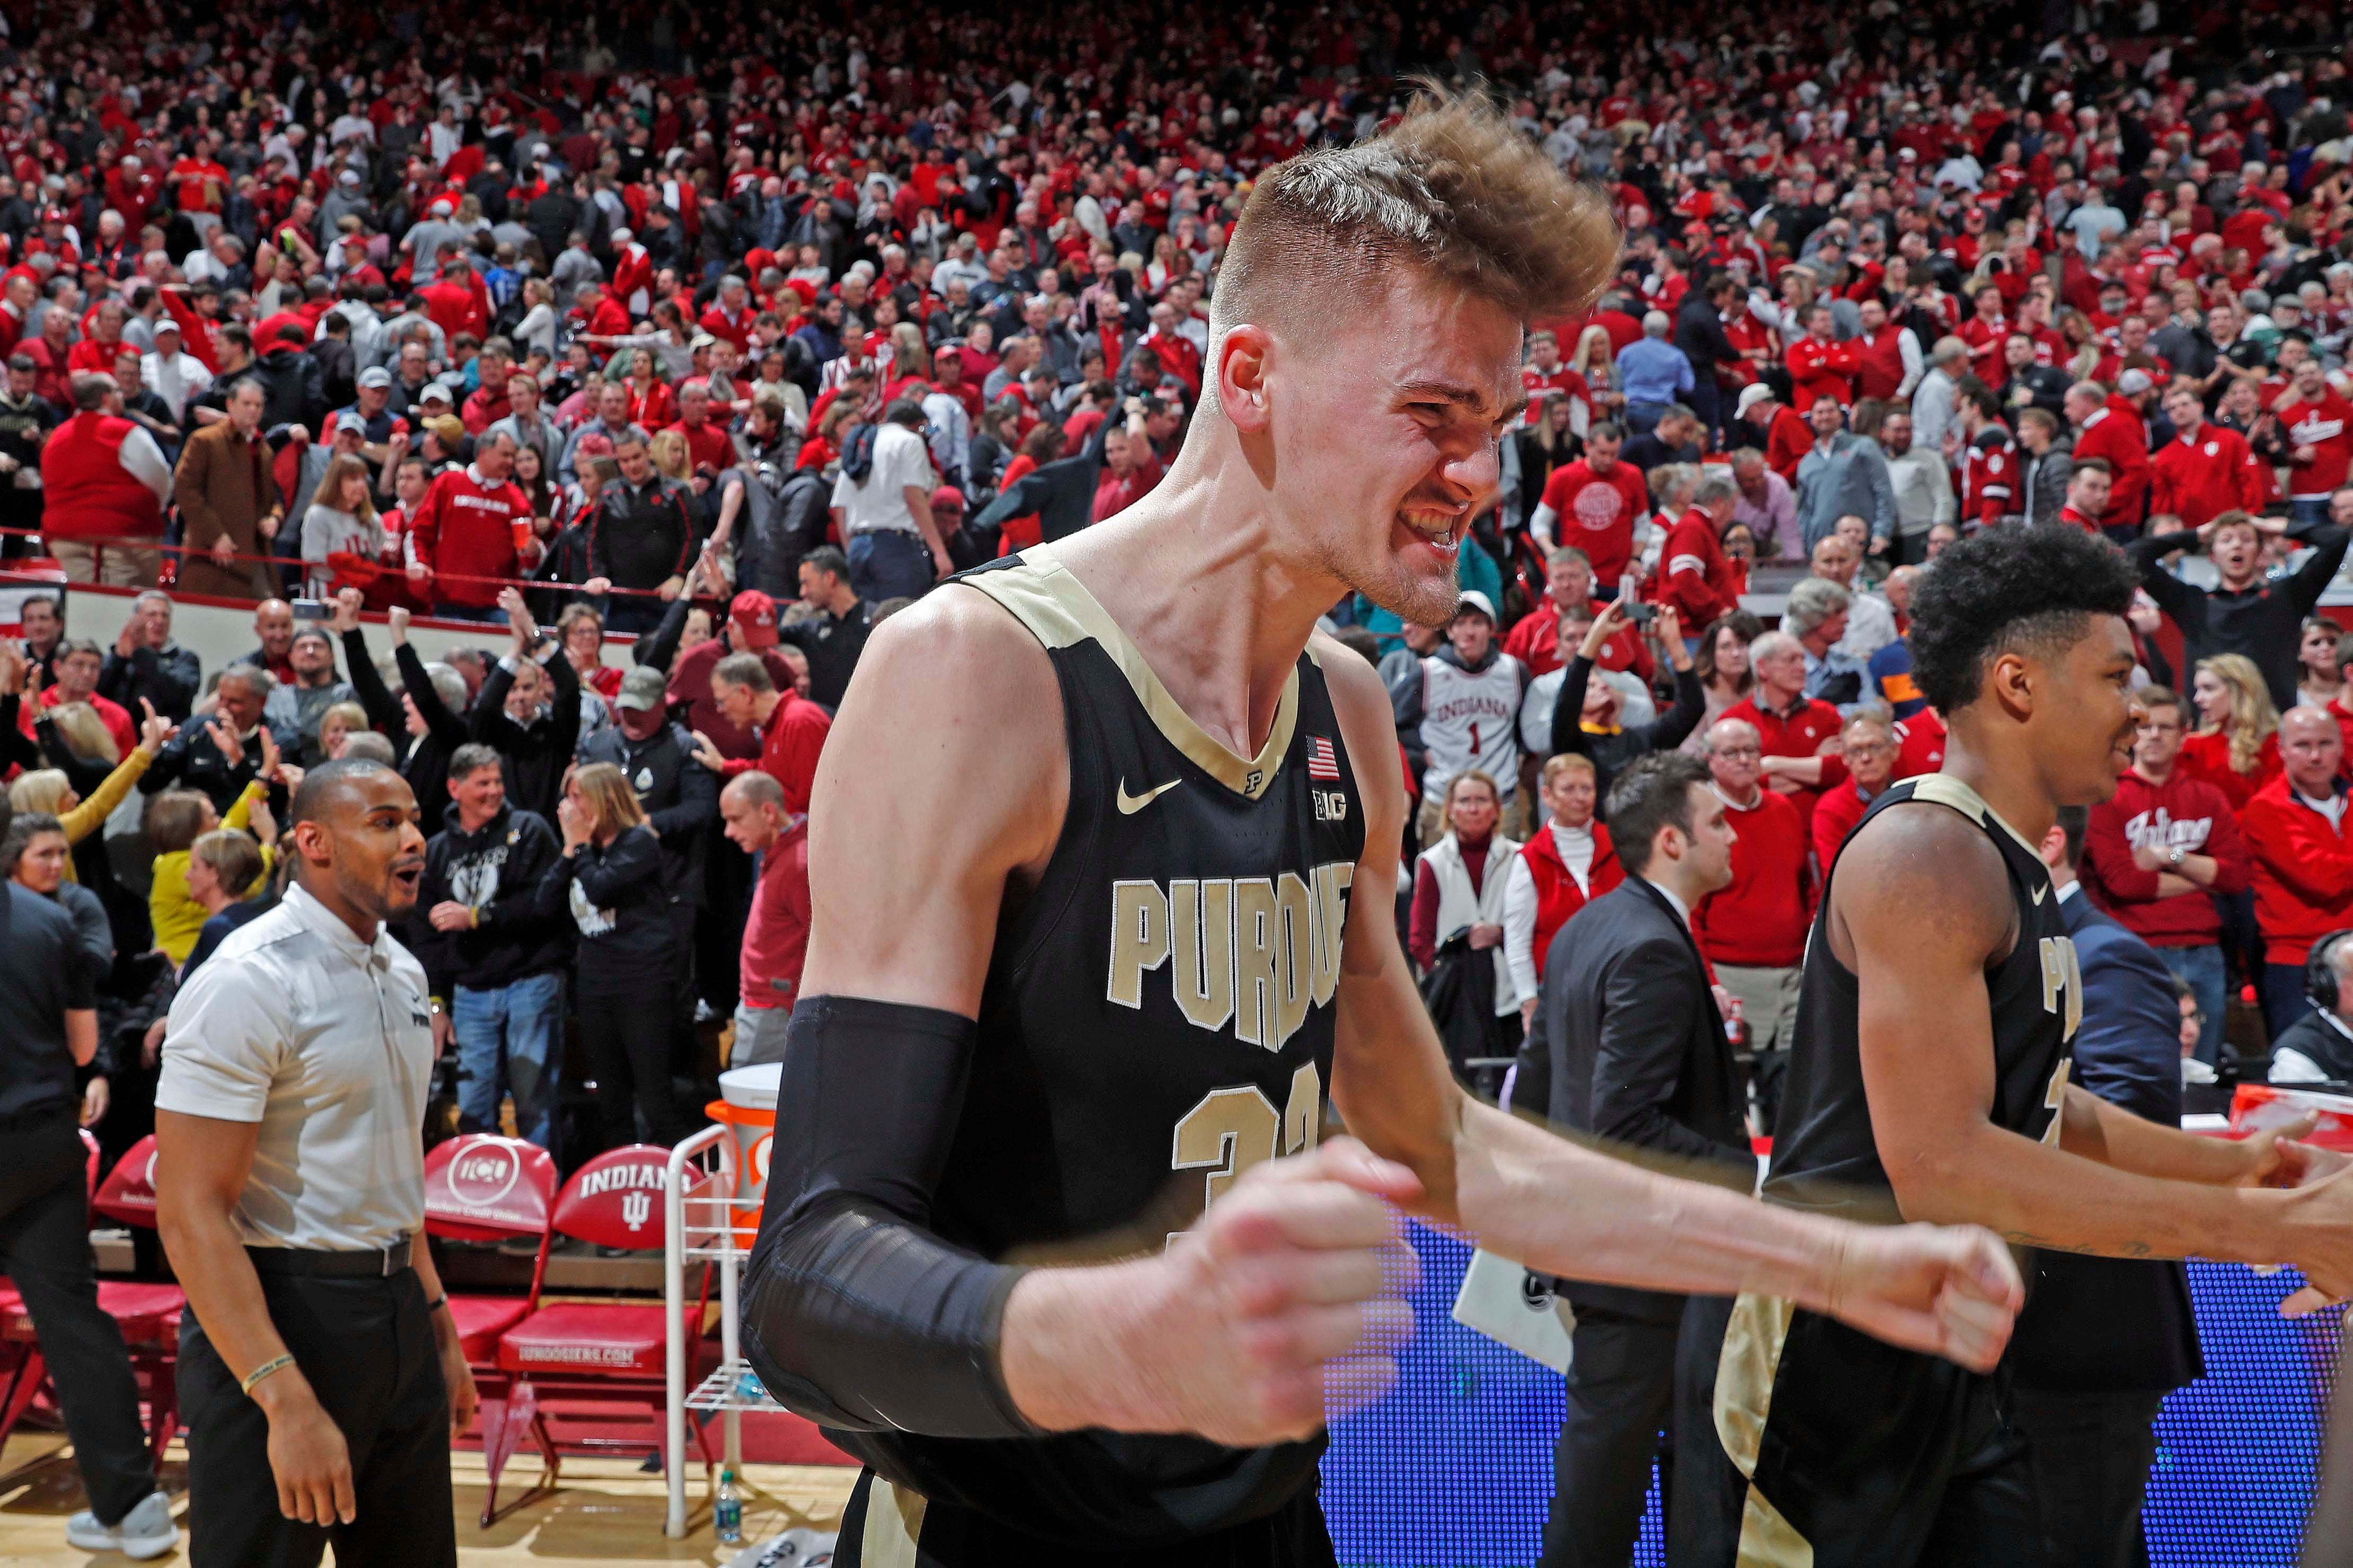 Purdue center Matt Haarms answers profane chant with winning shot against Indiana